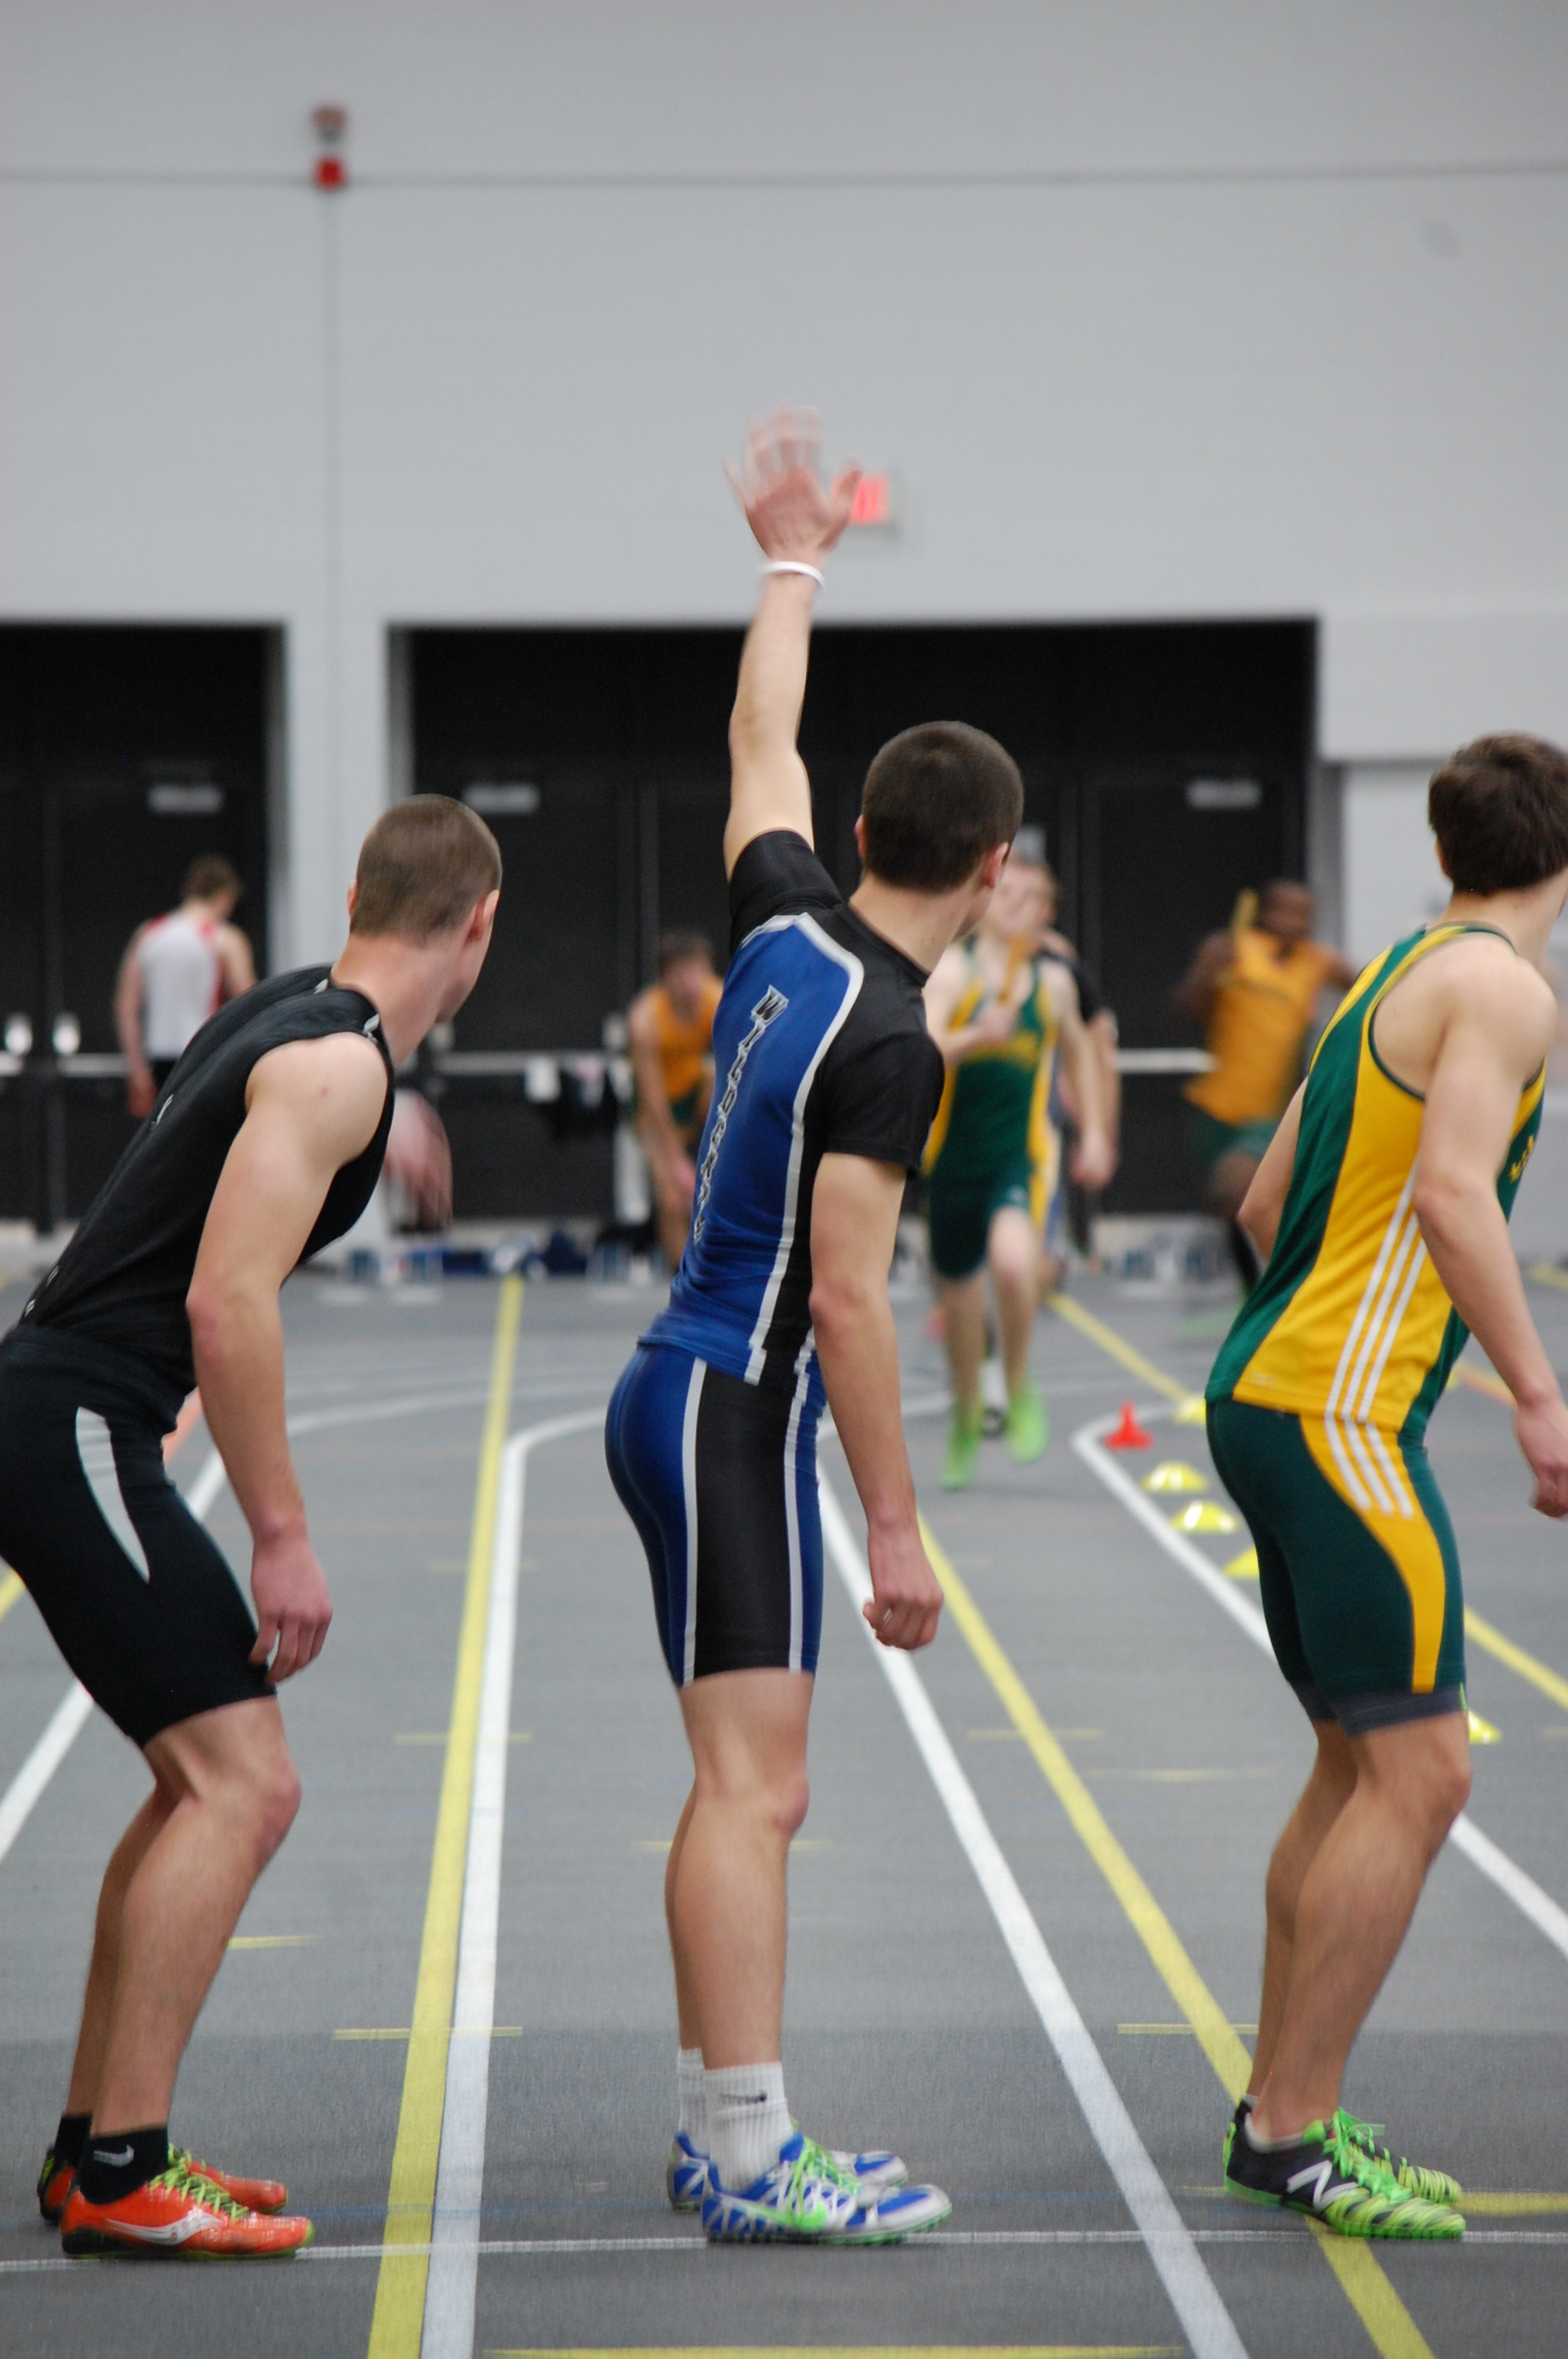 Isaiah Merrill signalsConner Arneson as he prepares to take the baton in the 1600 meter relay.